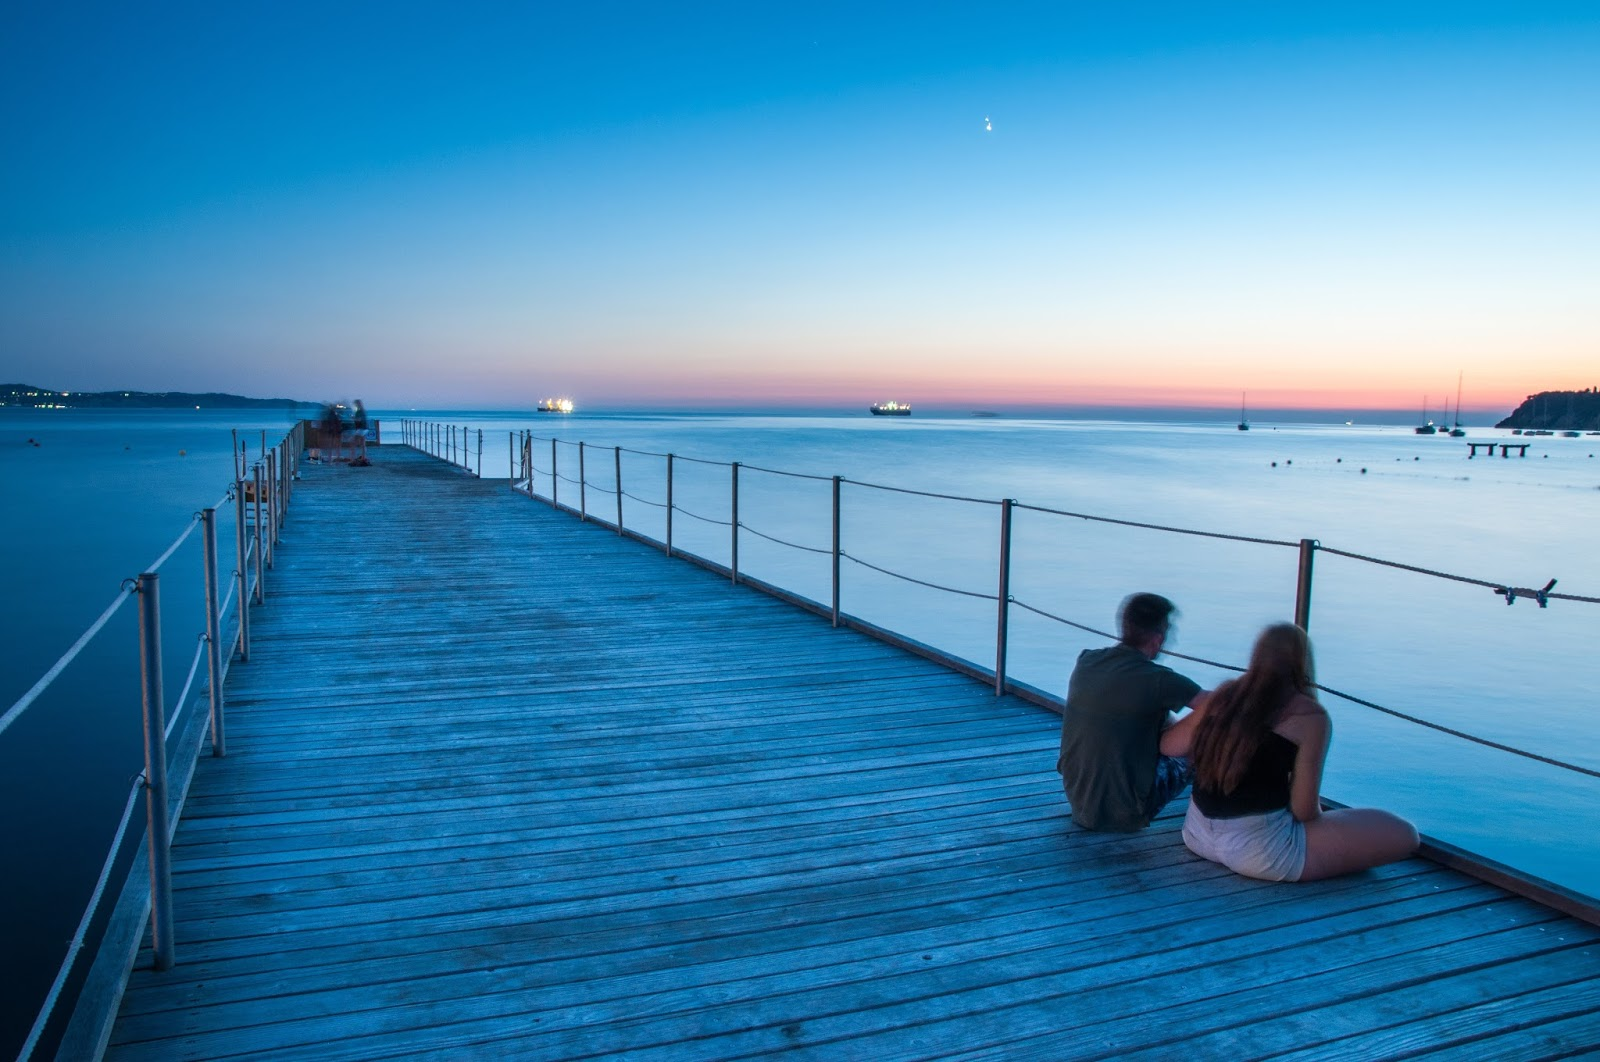 Couple on a pier at sunset